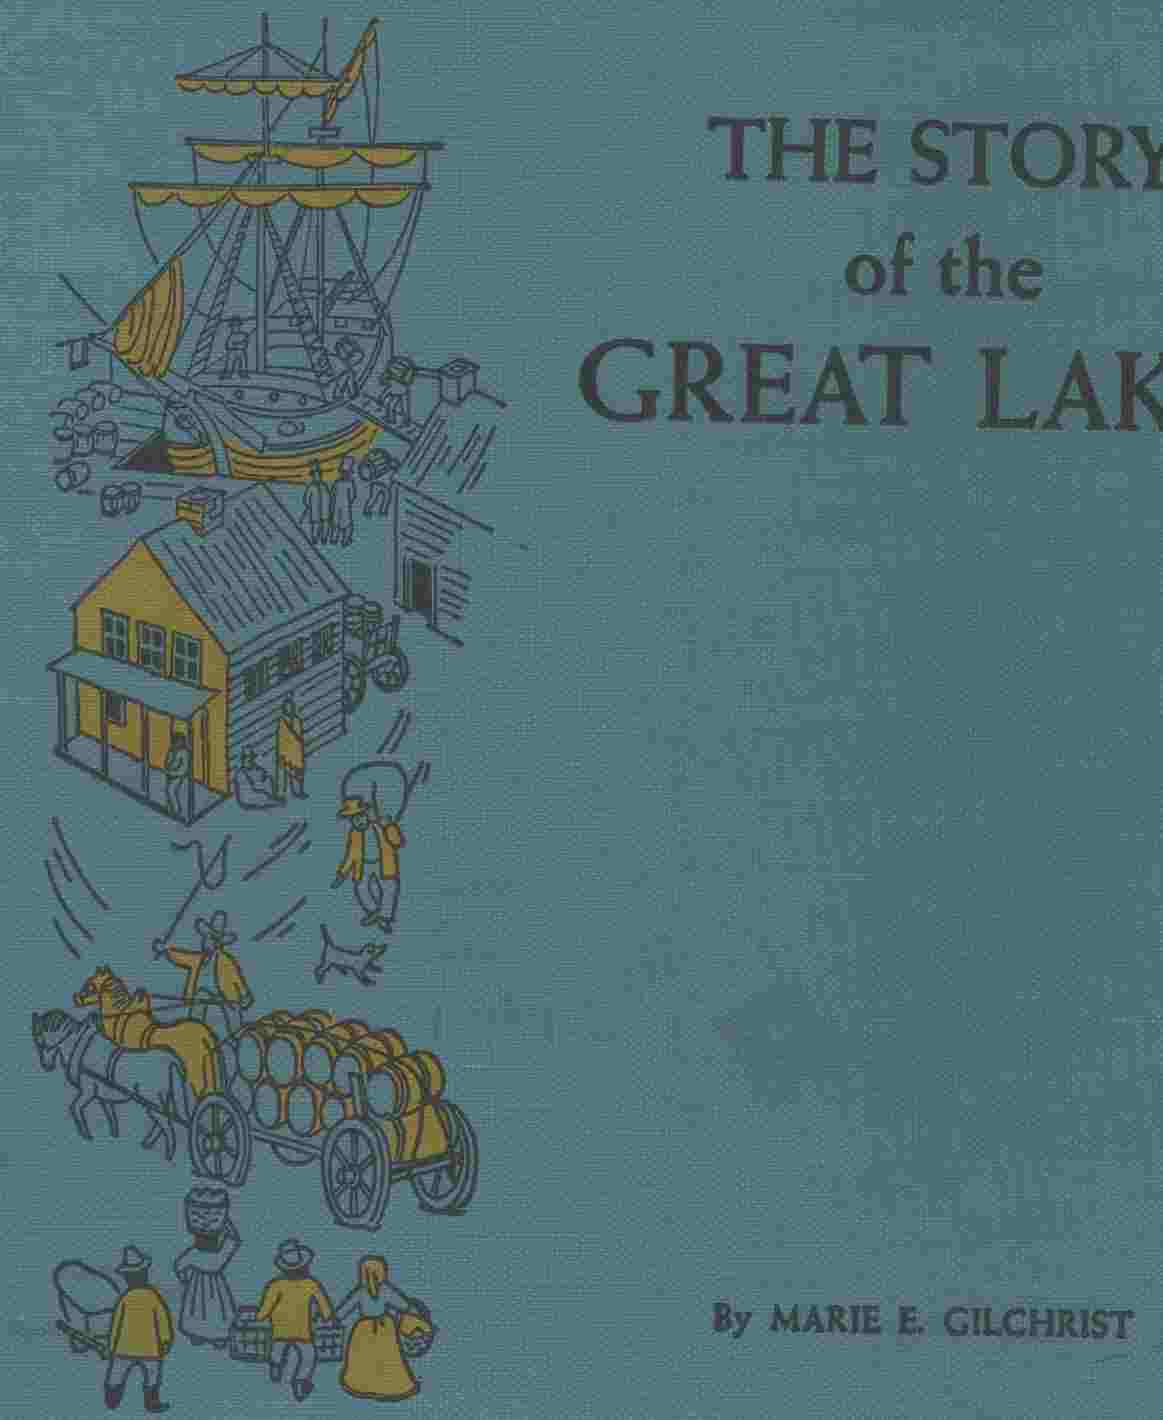 THE STORY OF THE GREAT LAKES, Gilchrist, Marie E.